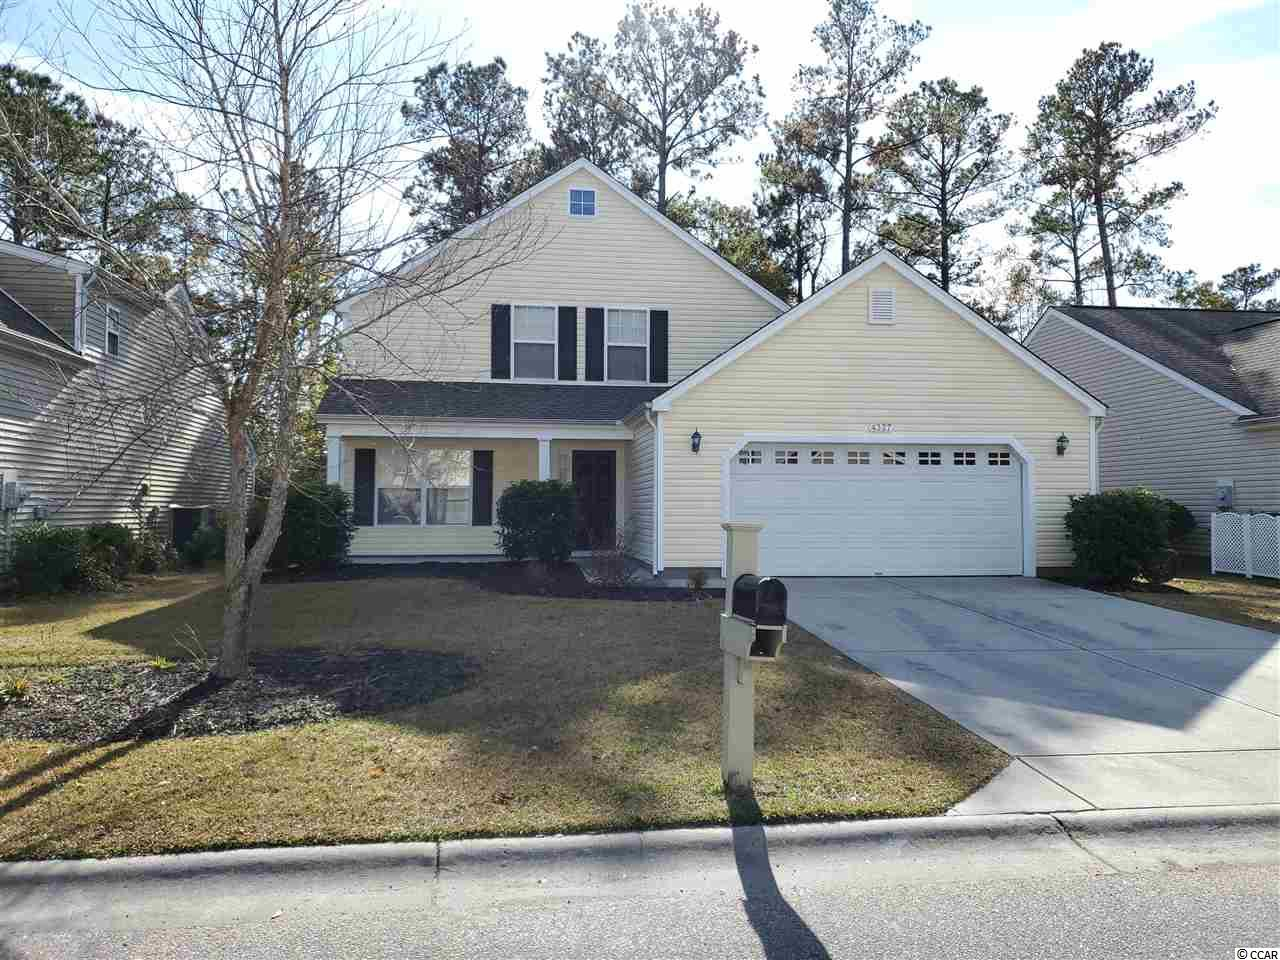 Absolutely charming 4BR/3.5BA home in popular Farm neighborhood in Carolina Forest.  Just minutes from the beach and convenient to Myrtle Beach International Airport and all Myrtle Beach shopping, dining, entertainment and golf.  The Farm offers amazing amenities such as pools, clubhouse, playground, basketball court, fitness and access to desirable Ocean Bay schools.  This home is situated on a wooded home site providing shade, privacy and serenity.  Inside you walk into a spacious great room.  The two car garage with laundry area is just off the great room.  A half bath is conveniently located in between the kitchen and great room.  The large eat in kitchen is bright and airy with plenty of cabinets and additional storage in the pantry.  A downstairs bedroom suite with a walk in closet and full bath with vanity, and tub/shower make this the perfect second master or guest bedroom.  Upstairs you have a spacious master bedroom with vaulted ceiling, lots of closet space and on suite bath boasting a dual sink vanity, tub/shower, linen closet and private toilet room.  On the other side of the upstairs hallway you have 2 spacious bedrooms with vaulted ceilings that share a hall bath.  This home has only been used as a second home and never rented.  New HVAC 2 years ago and all appliances including the washer/dryer are included.  There is also the possibility of being sold furnished. Don't miss this opportunity, this one won't be on the market long!  Be sure to check out the all immersive 3D virtual tour and schedule your showing today!